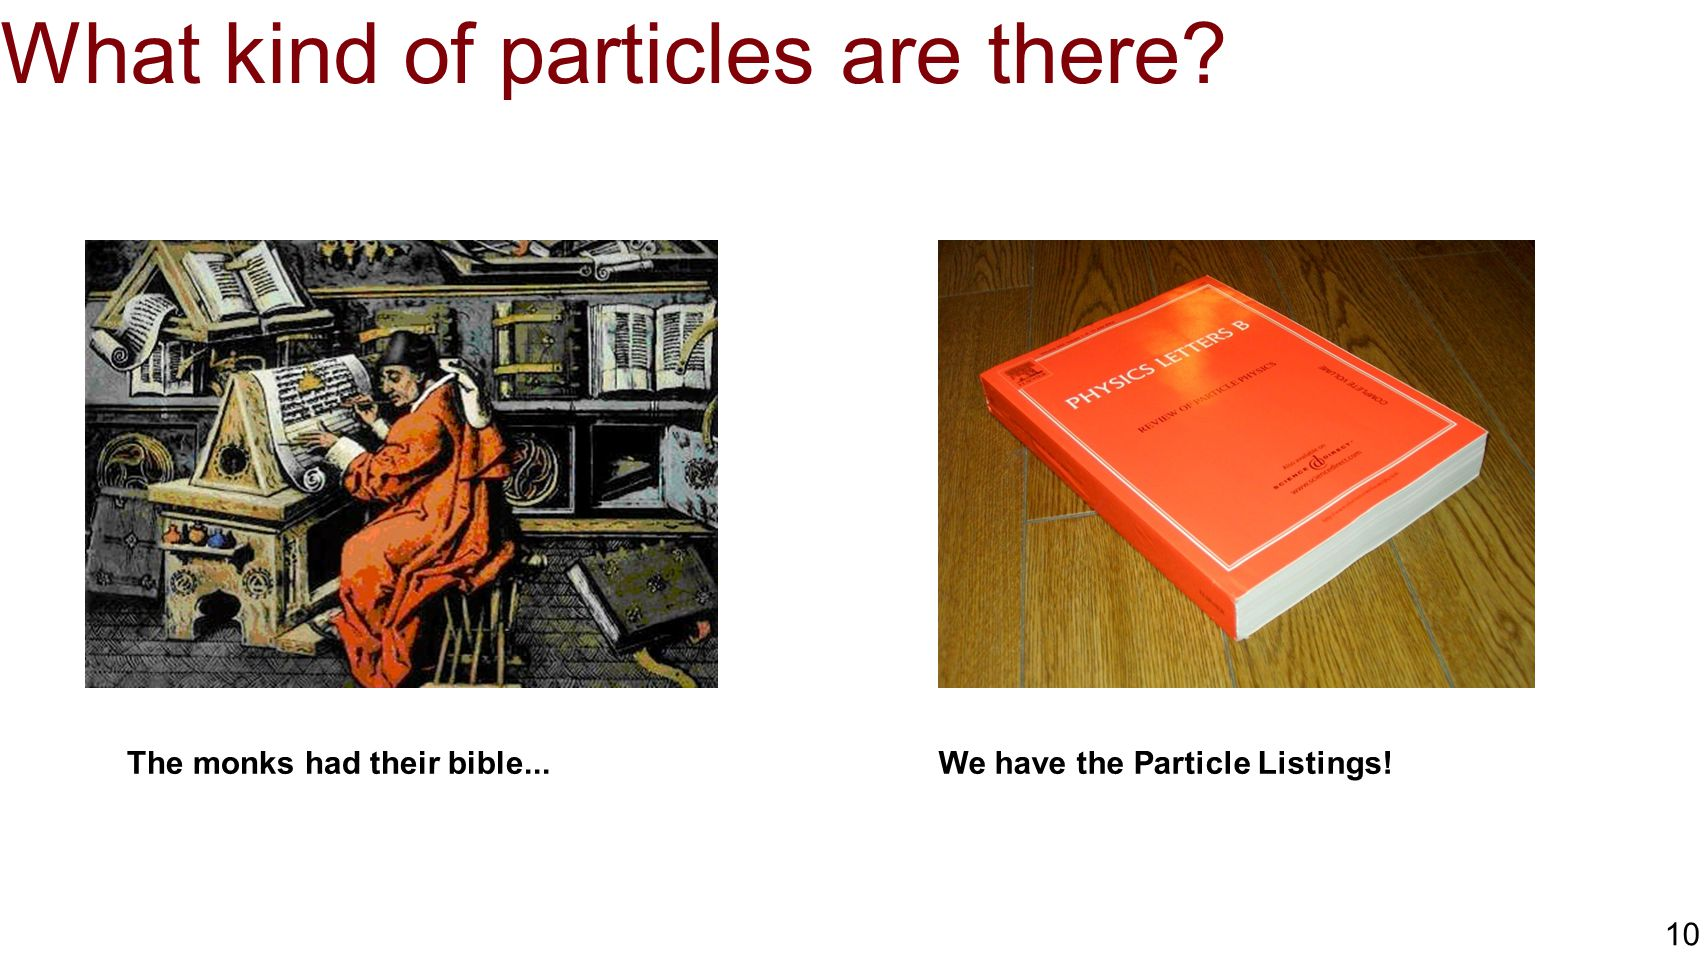 What kind of particles are there